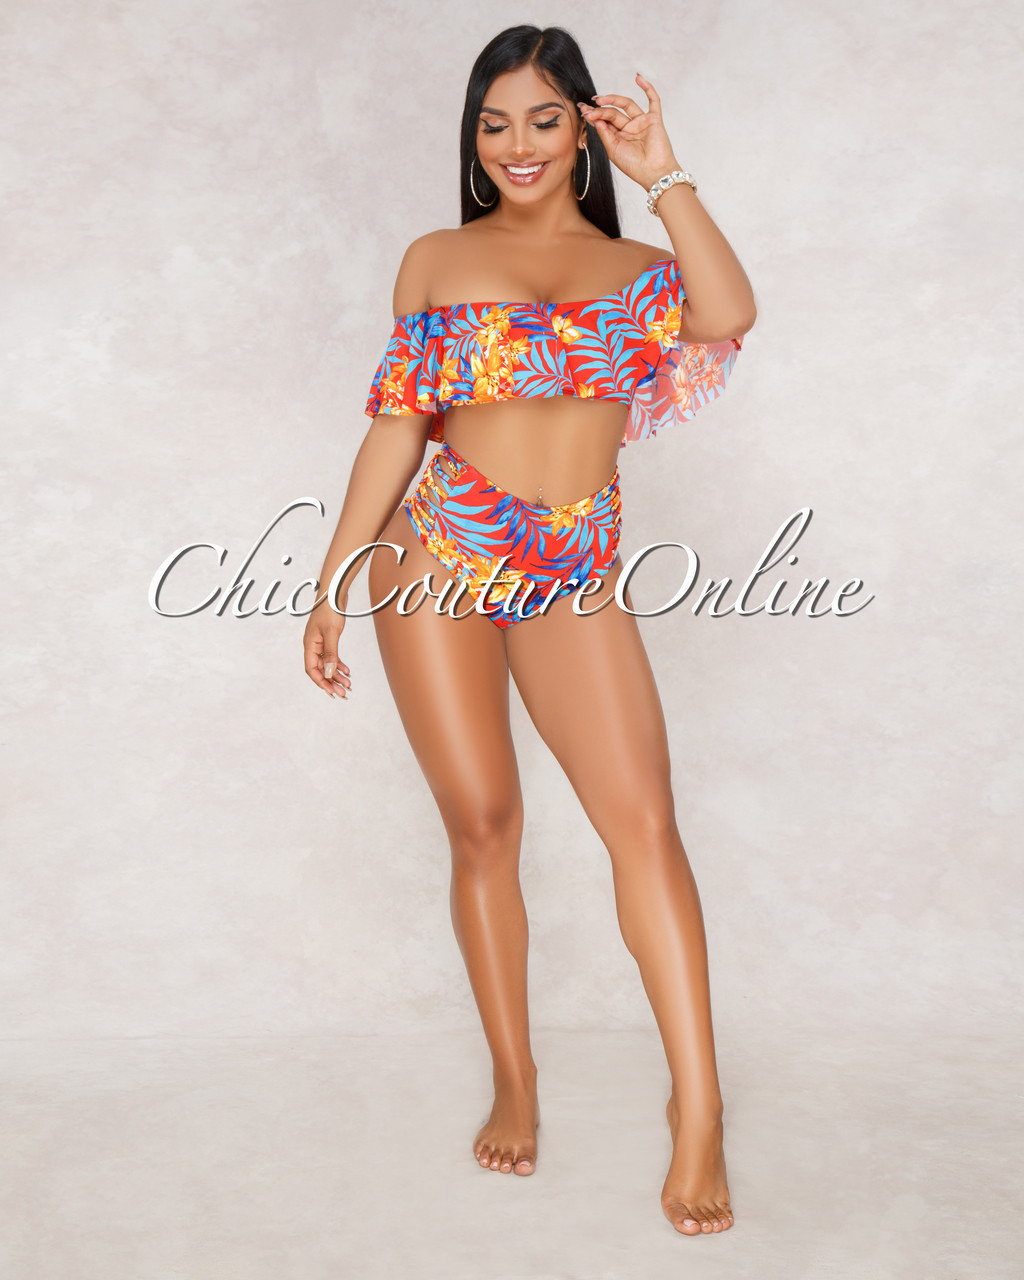 326036d239ad8 ... Ruffle Top and Strappy High Waist Two Piece Swimsuit. Price   50.00.  Image 1. Larger   More Photos